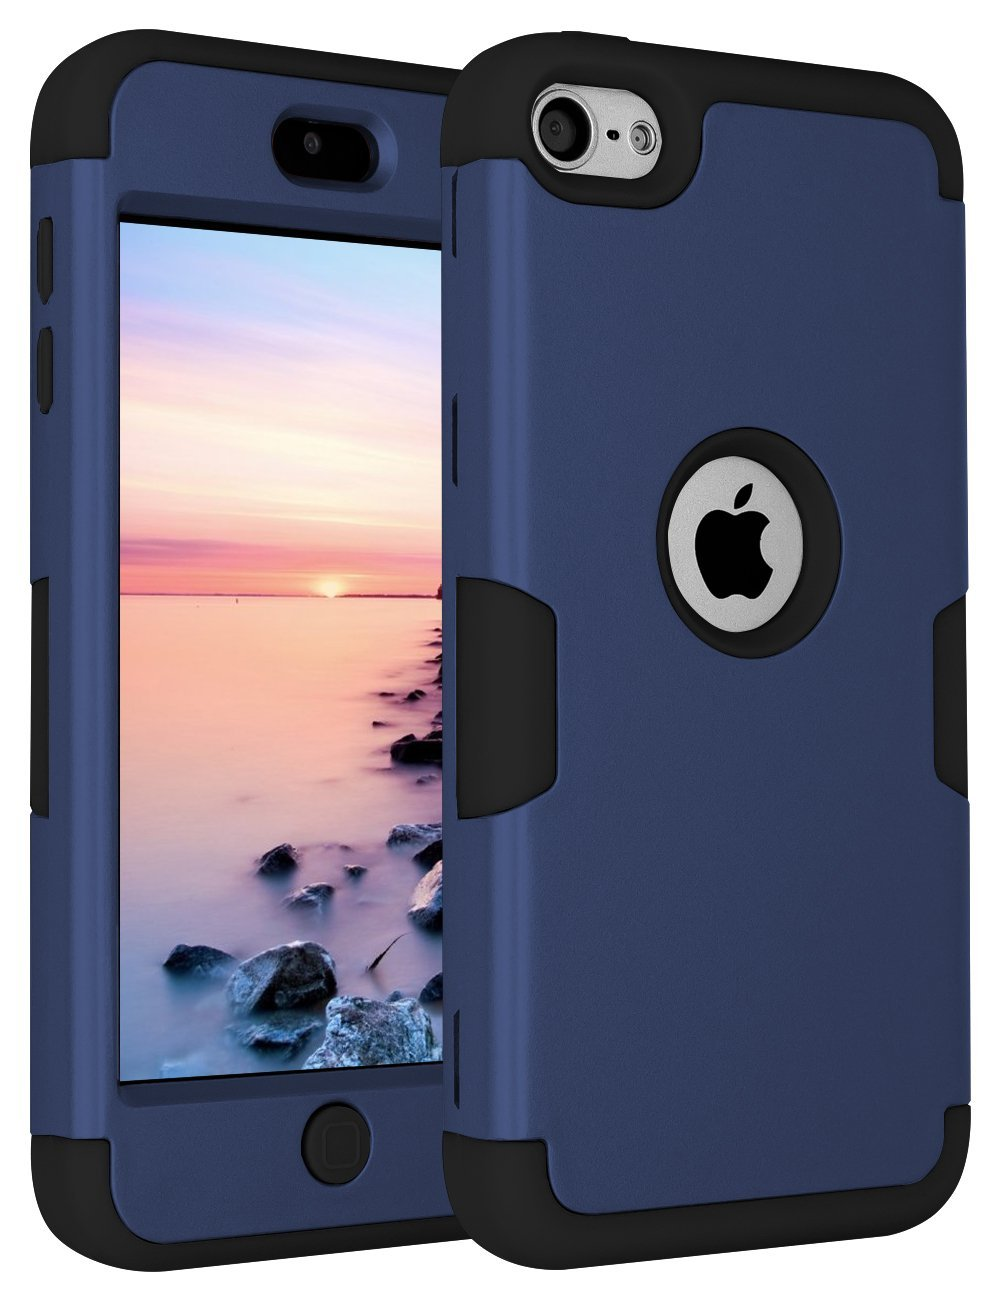 iPod Touch 6 Case,iPod Touch 5 Case,ANLI(TM)[Colorful Series] 3-Piece Style Hybrid Silicon Hard Case Cover for Apple iPod Touch 5 6th Generation 2015 Realeased (Deep Blue/Black)